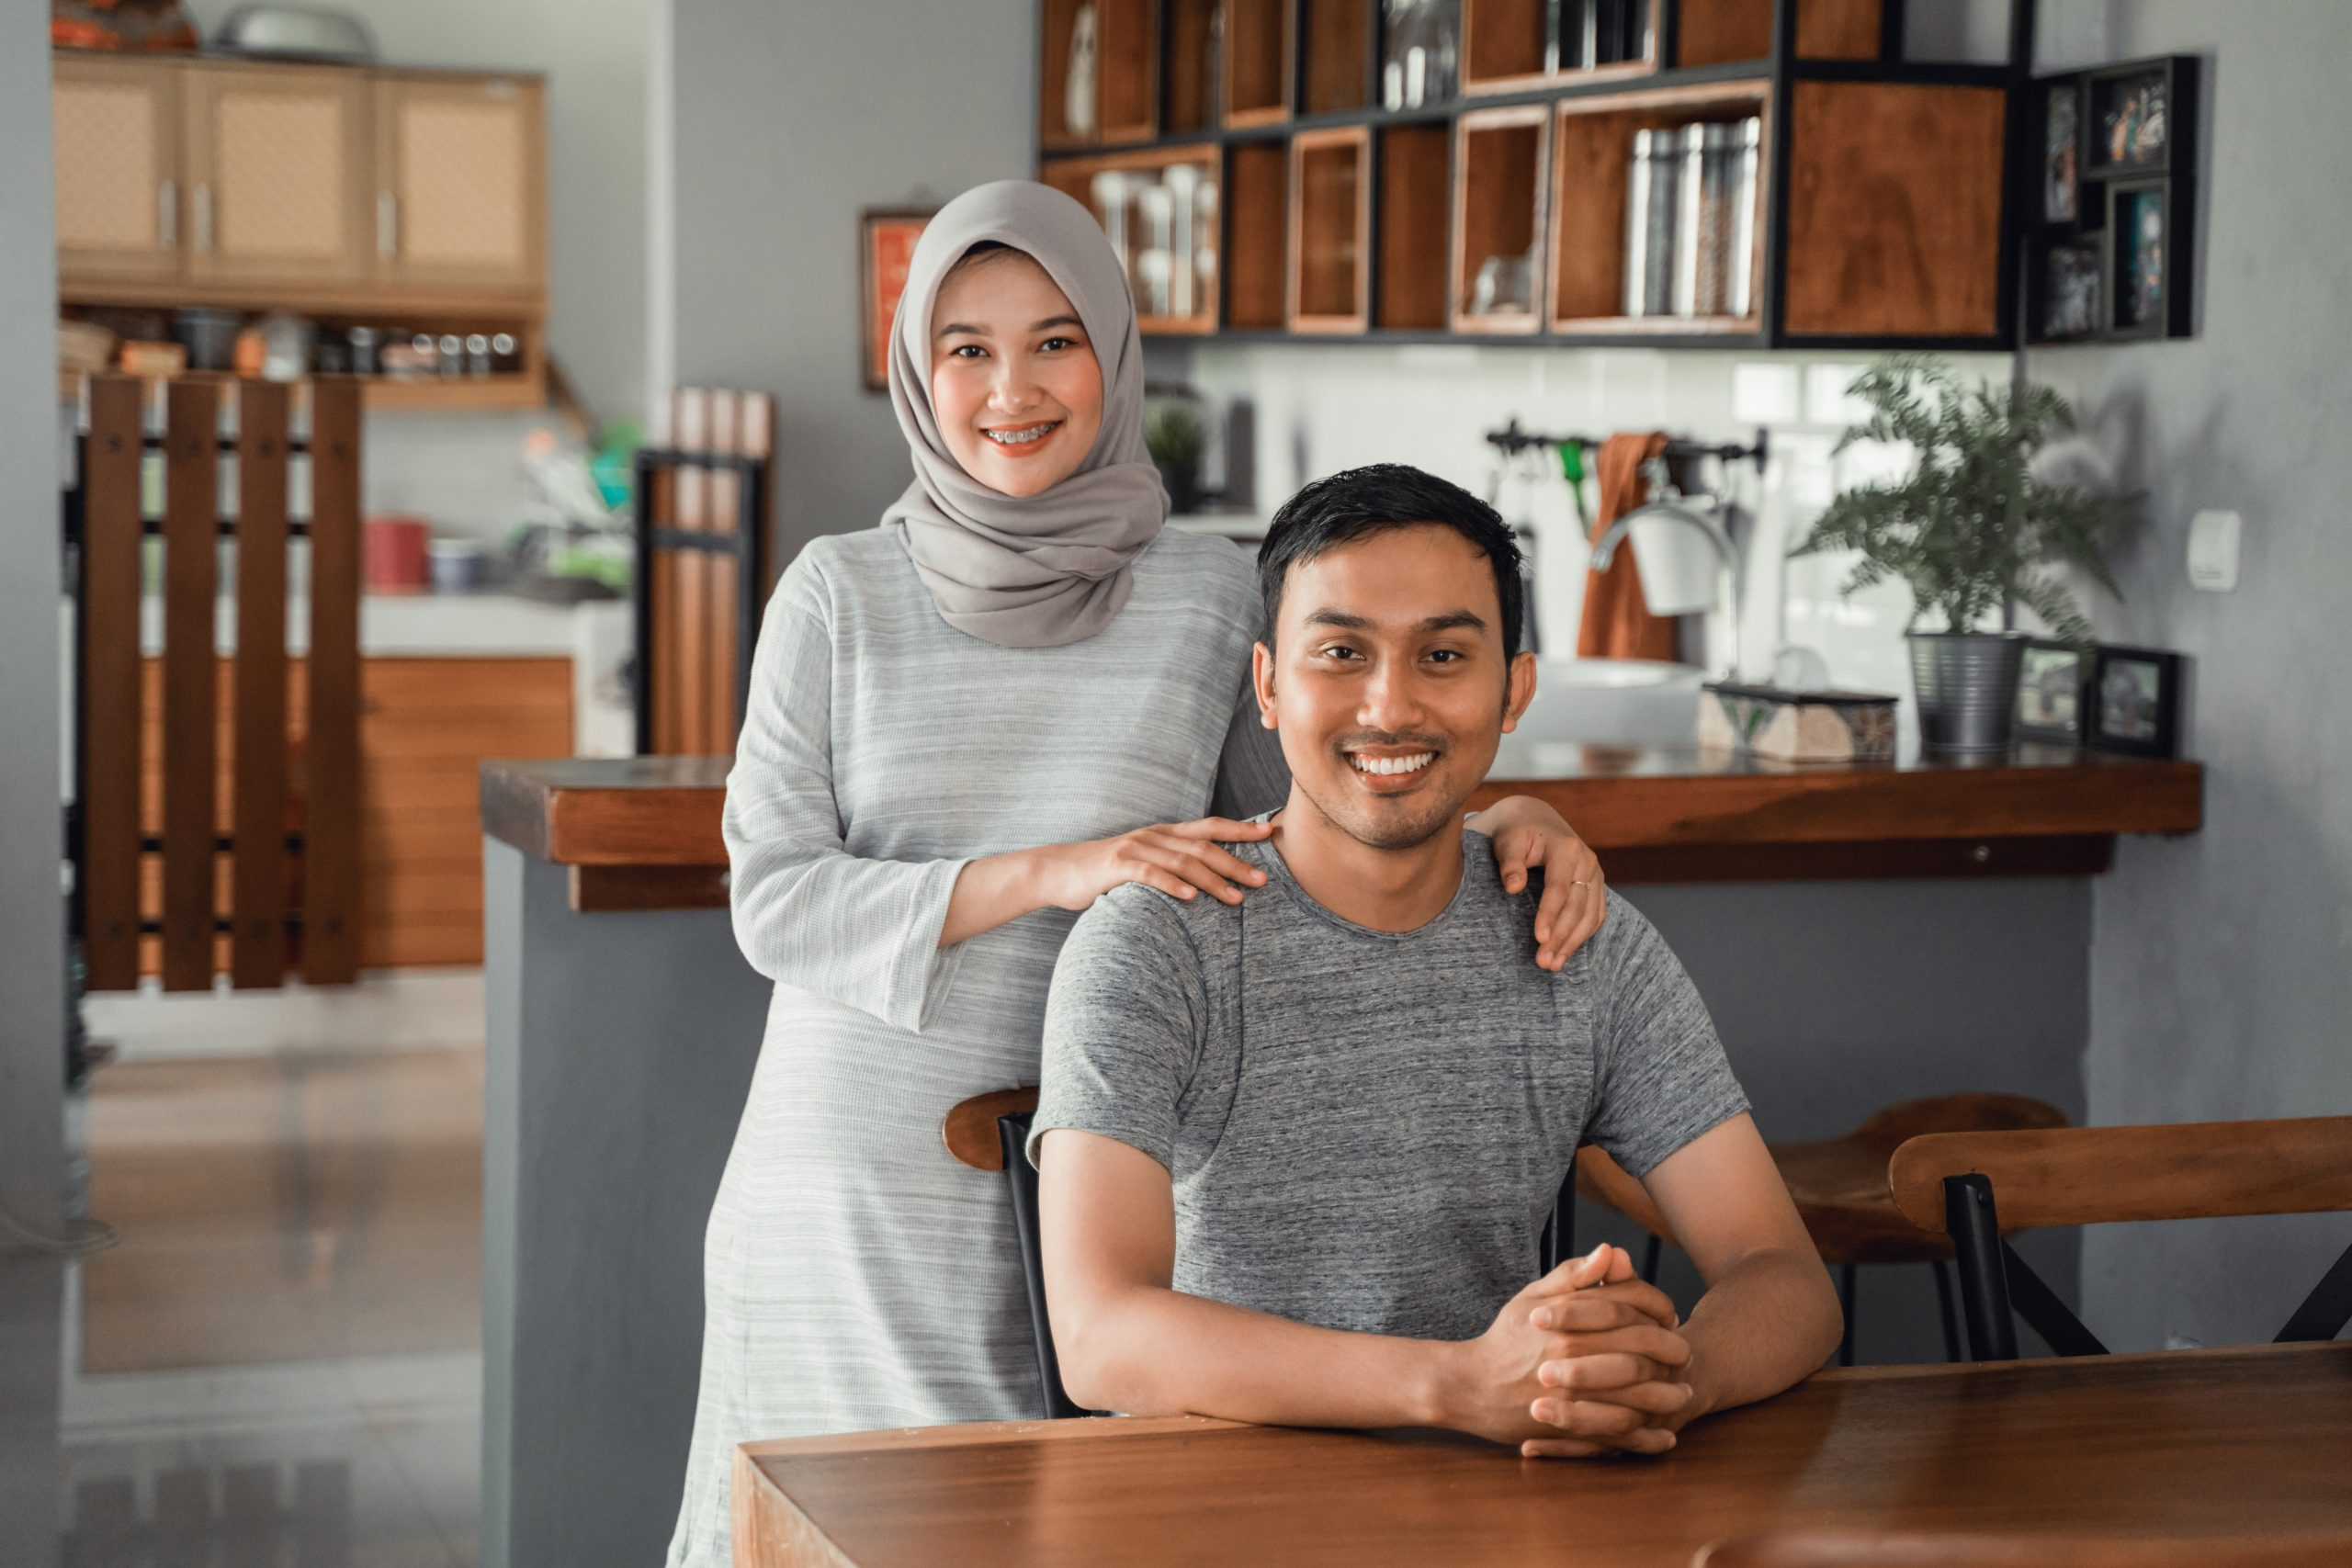 muslim-couple-sitting-dining-room-together-scaled-1.jpg